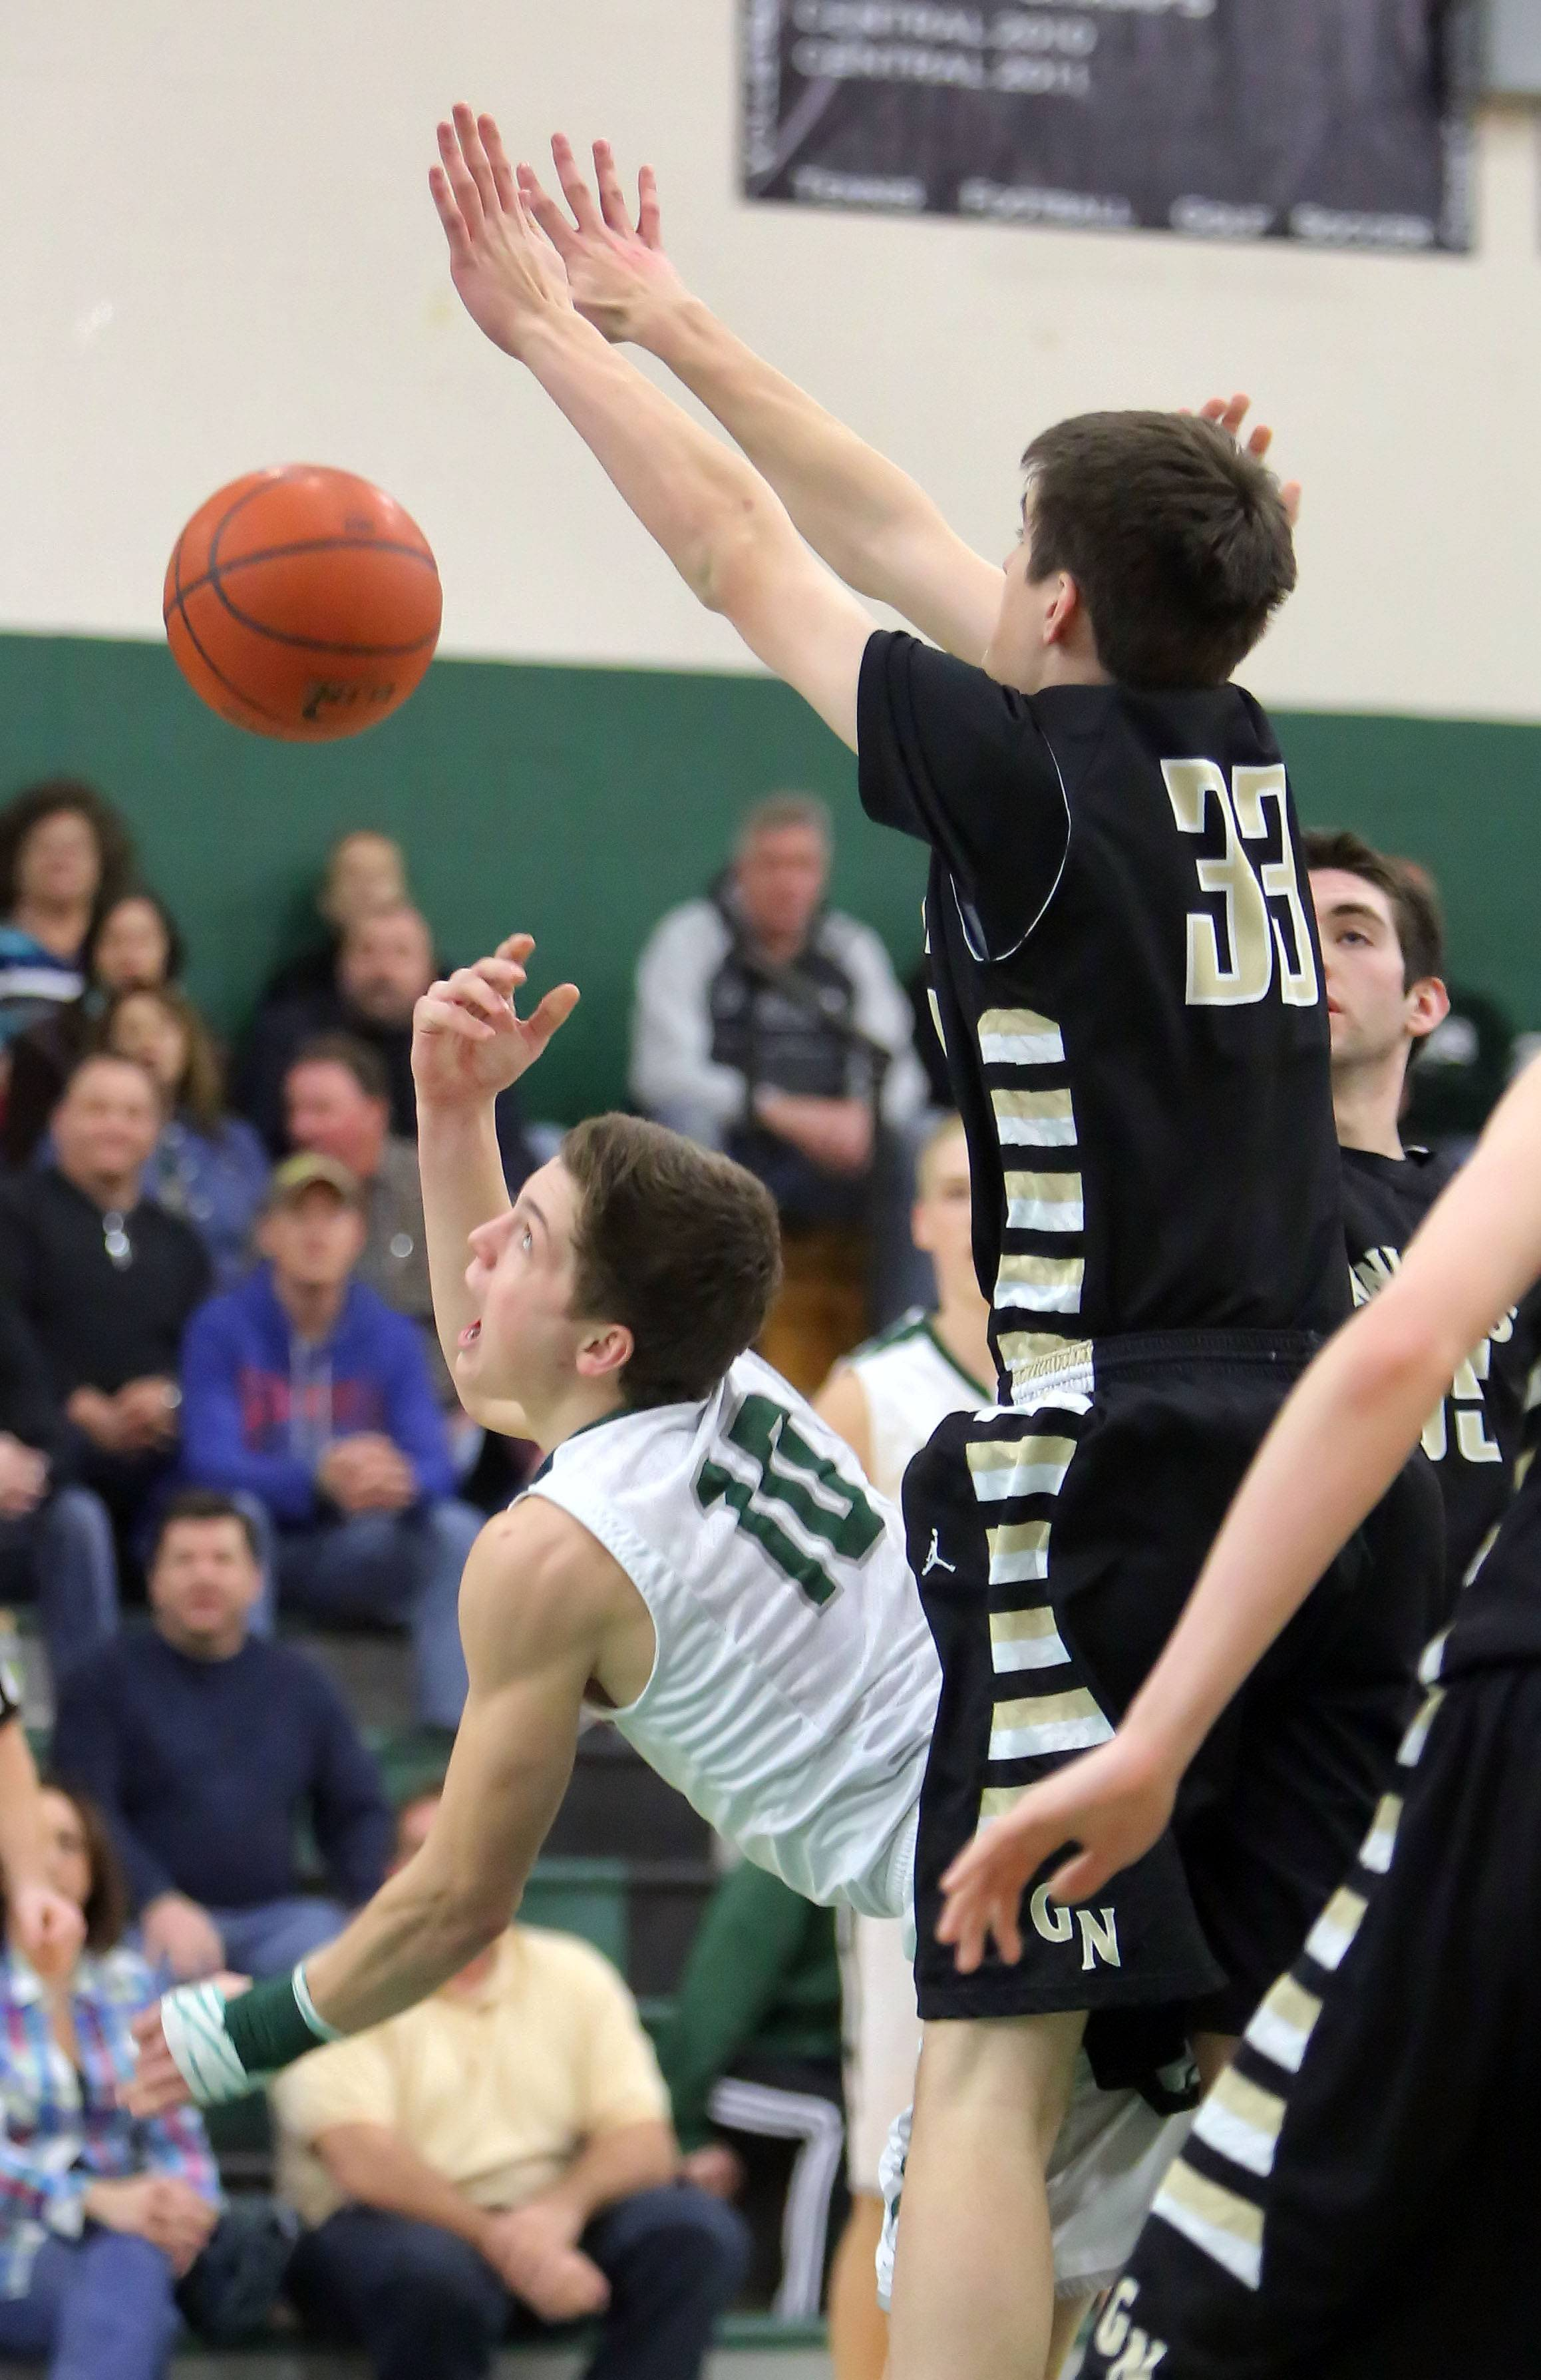 Grayslake Central's Joey Mudd, left, scoops a shot past Grayslake North's Aiden Einloth.